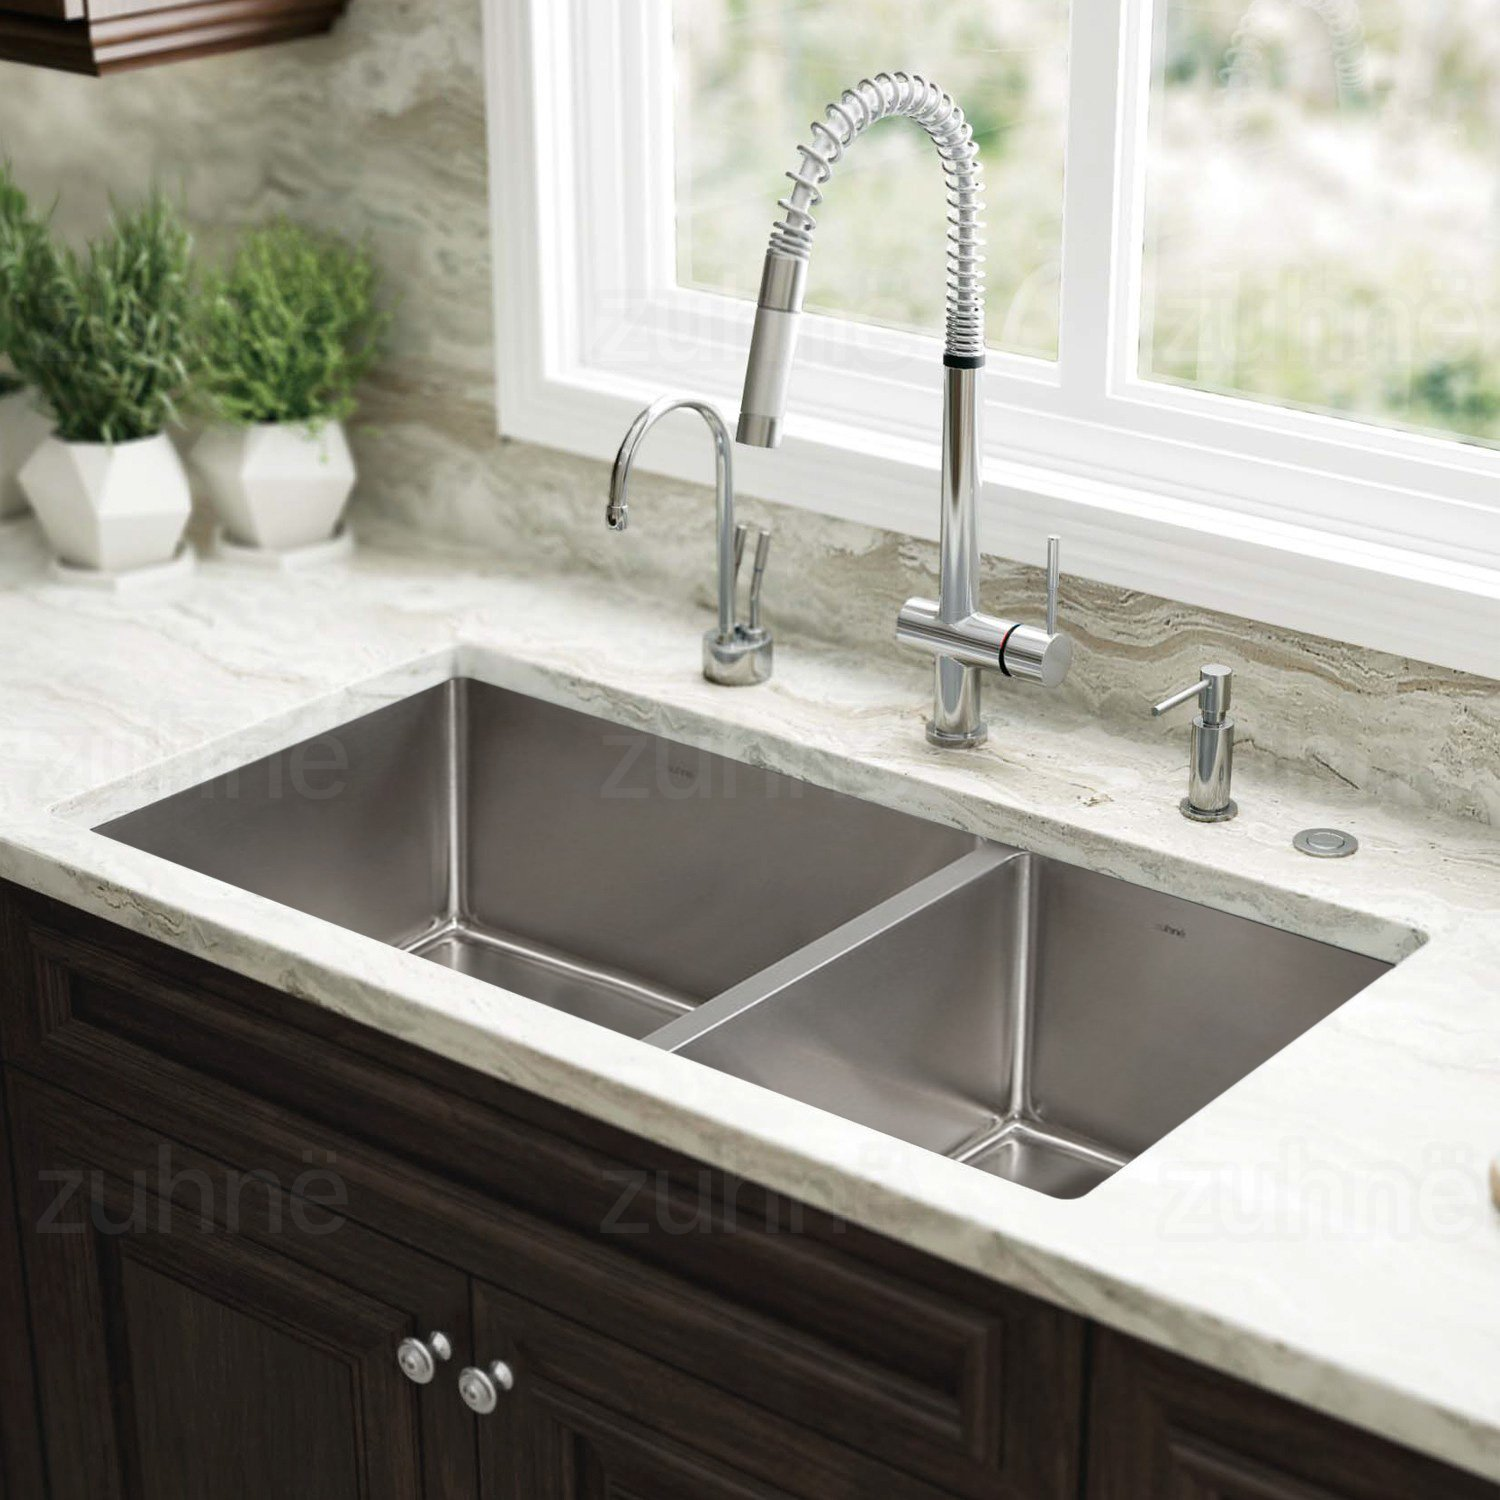 countertops beautified sink sinks swanstone countertop backsplash granite tile pin and kitchen with